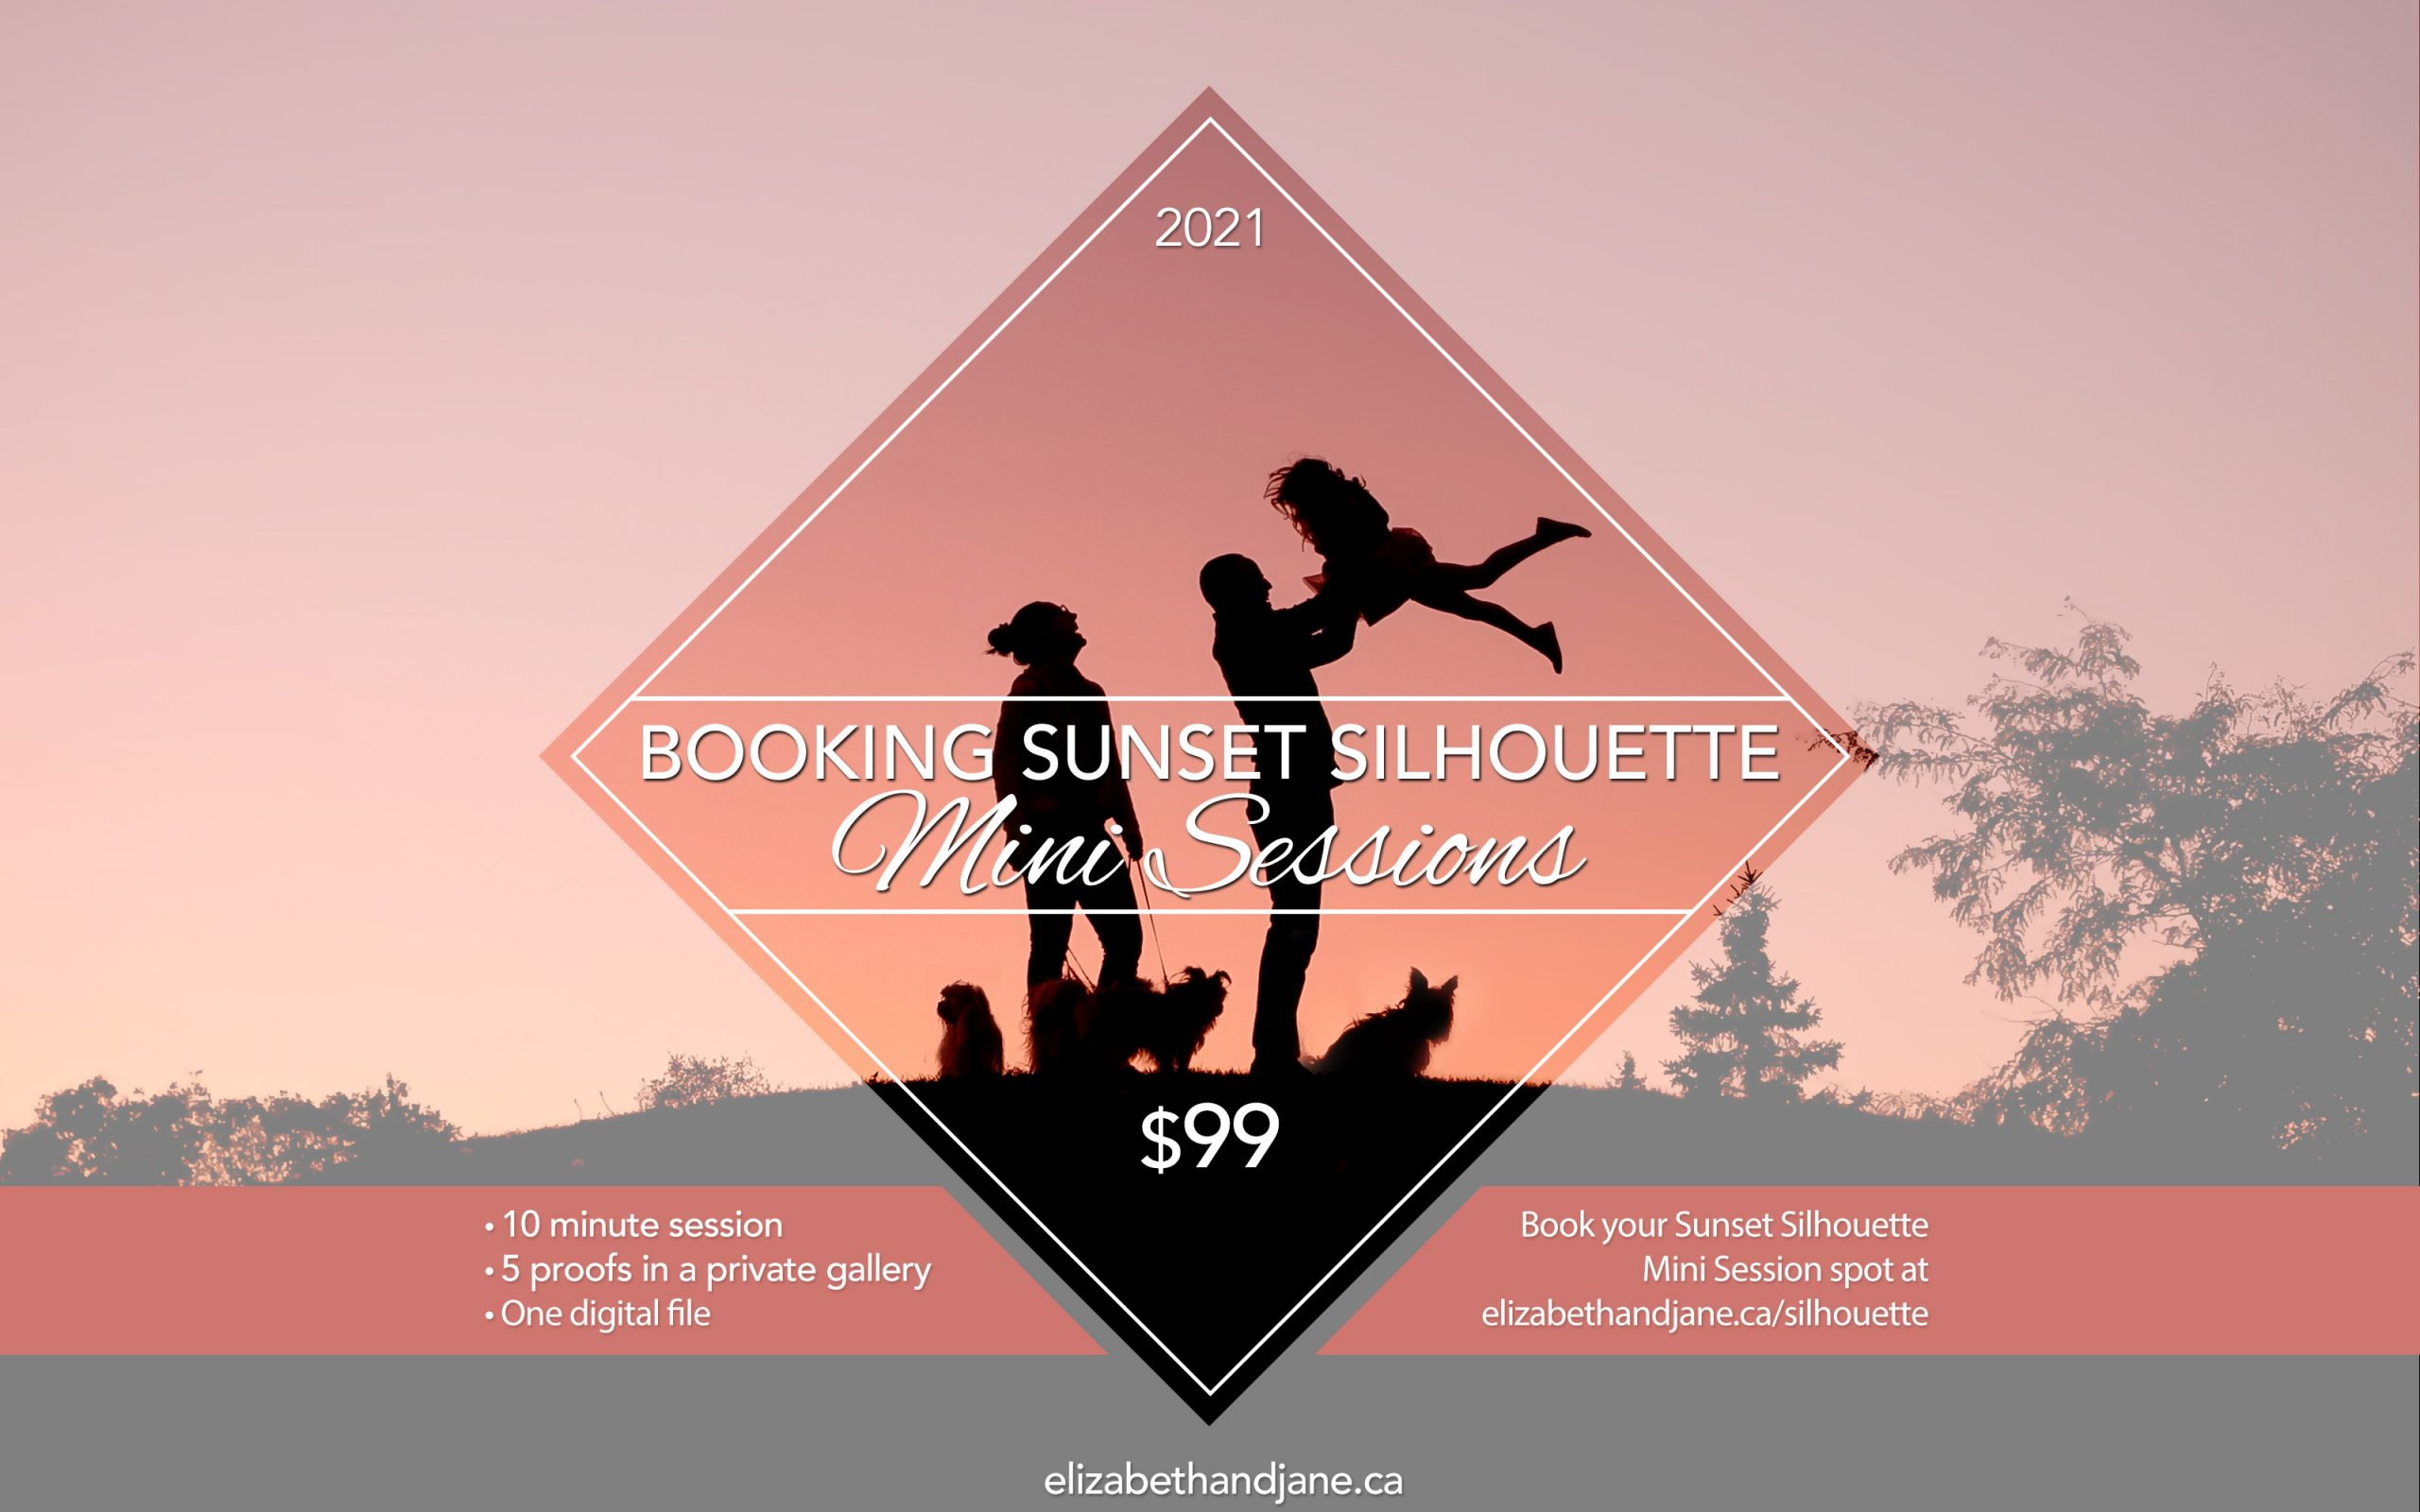 Book your Sunset Silhouette Mini Session today